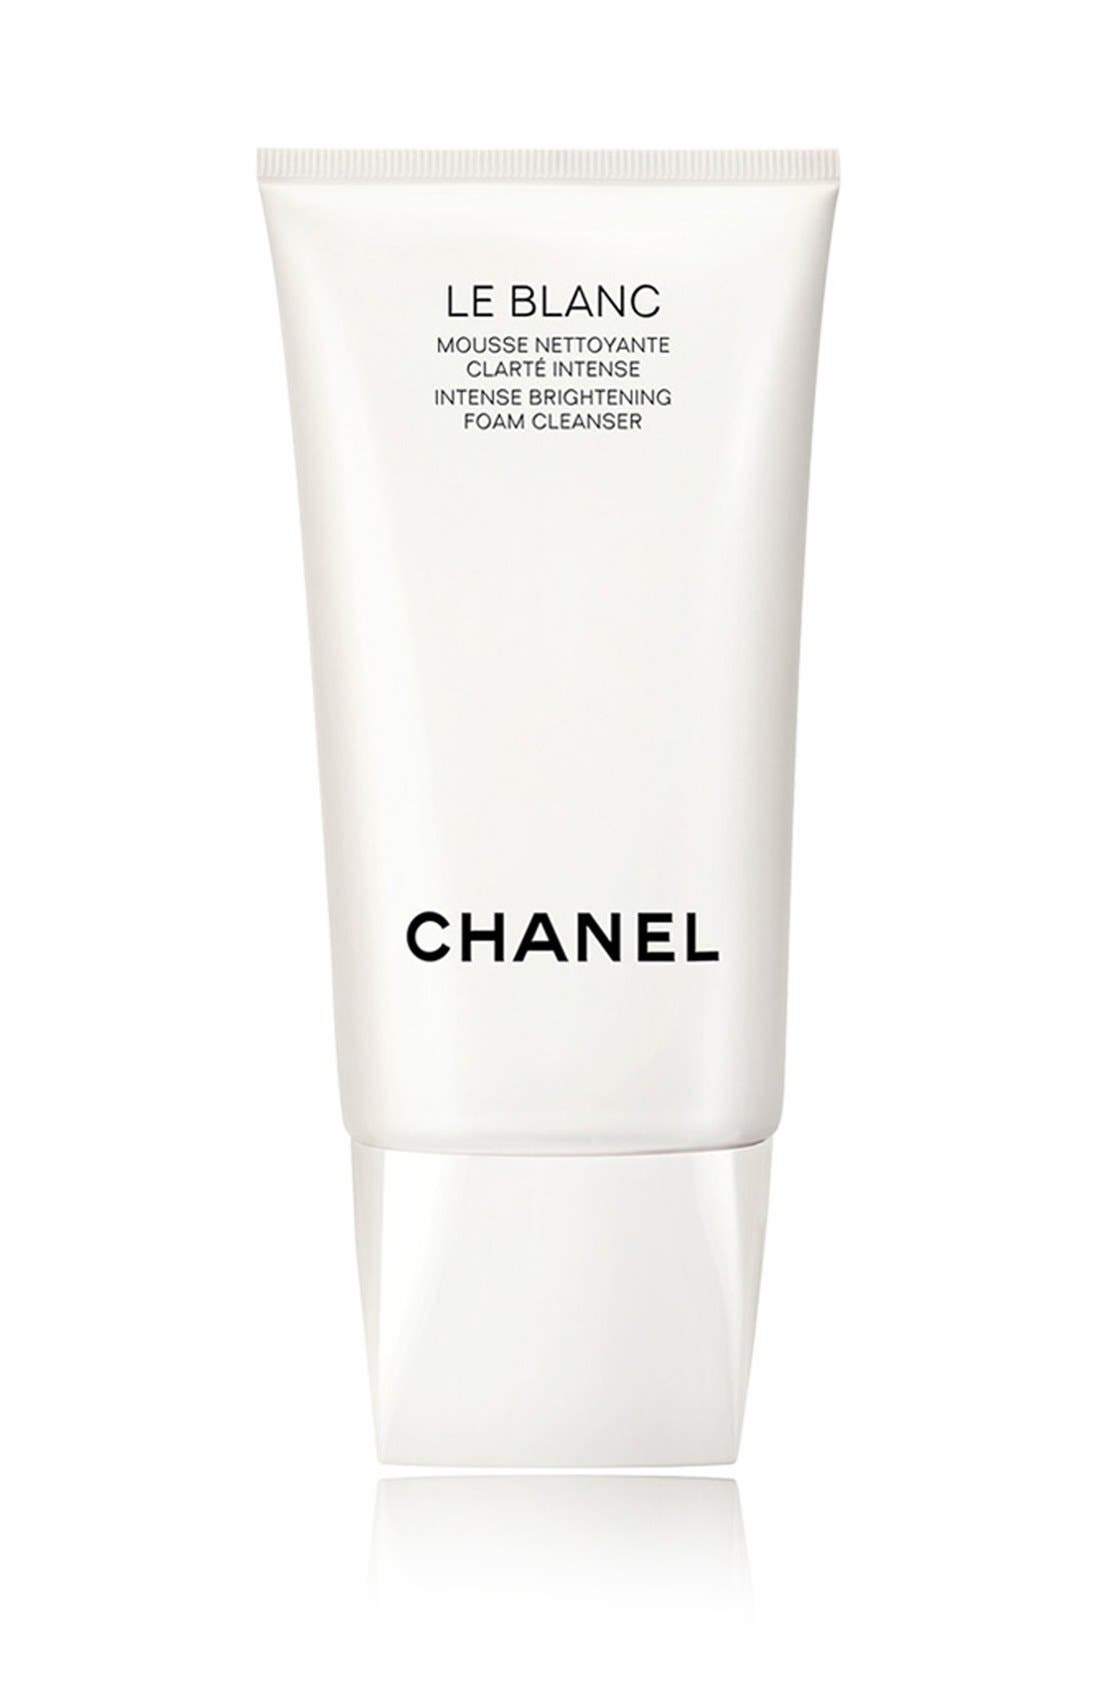 LE BLANC<br />Intense Brightening Foam Cleanser,                             Main thumbnail 1, color,                             NO COLOR